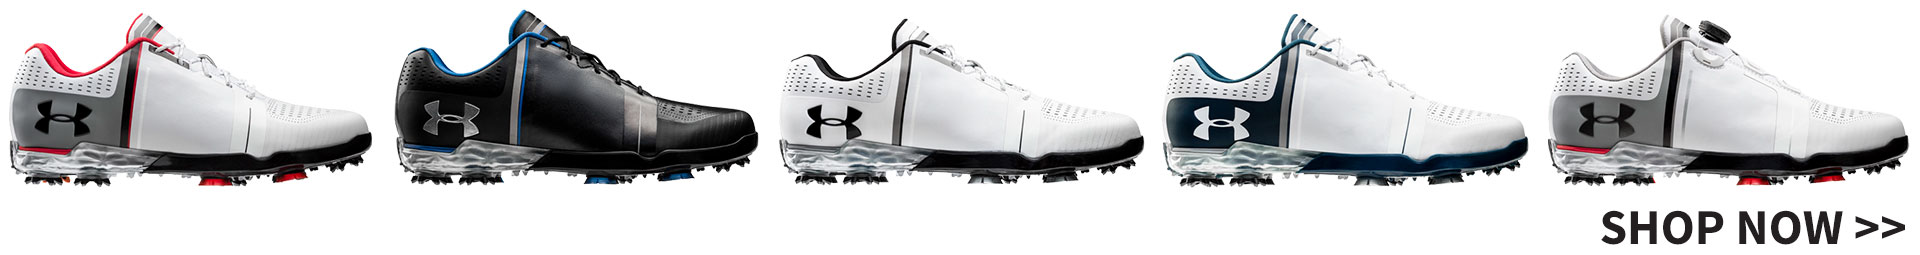 UnderArmour Jordan Speith One Competition